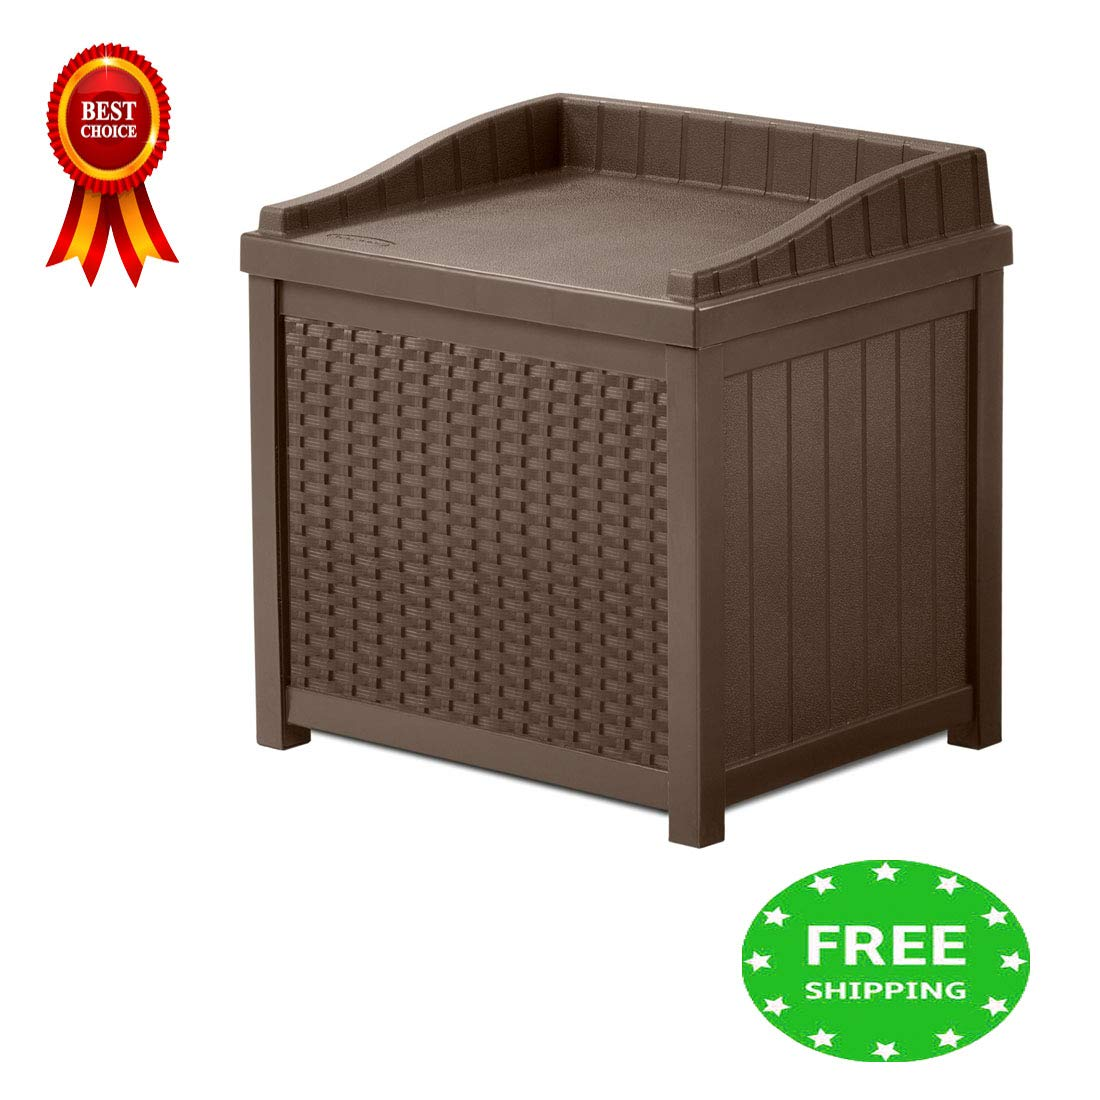 Patio Storage Cabinet Coffee Table 22 Gallon Storage Box Waterproof Durable & Sitting Bench for Indoor Outdoor Garden Backyard Home Furniture Container Weather Resistance & e-book by jn.widetrade.